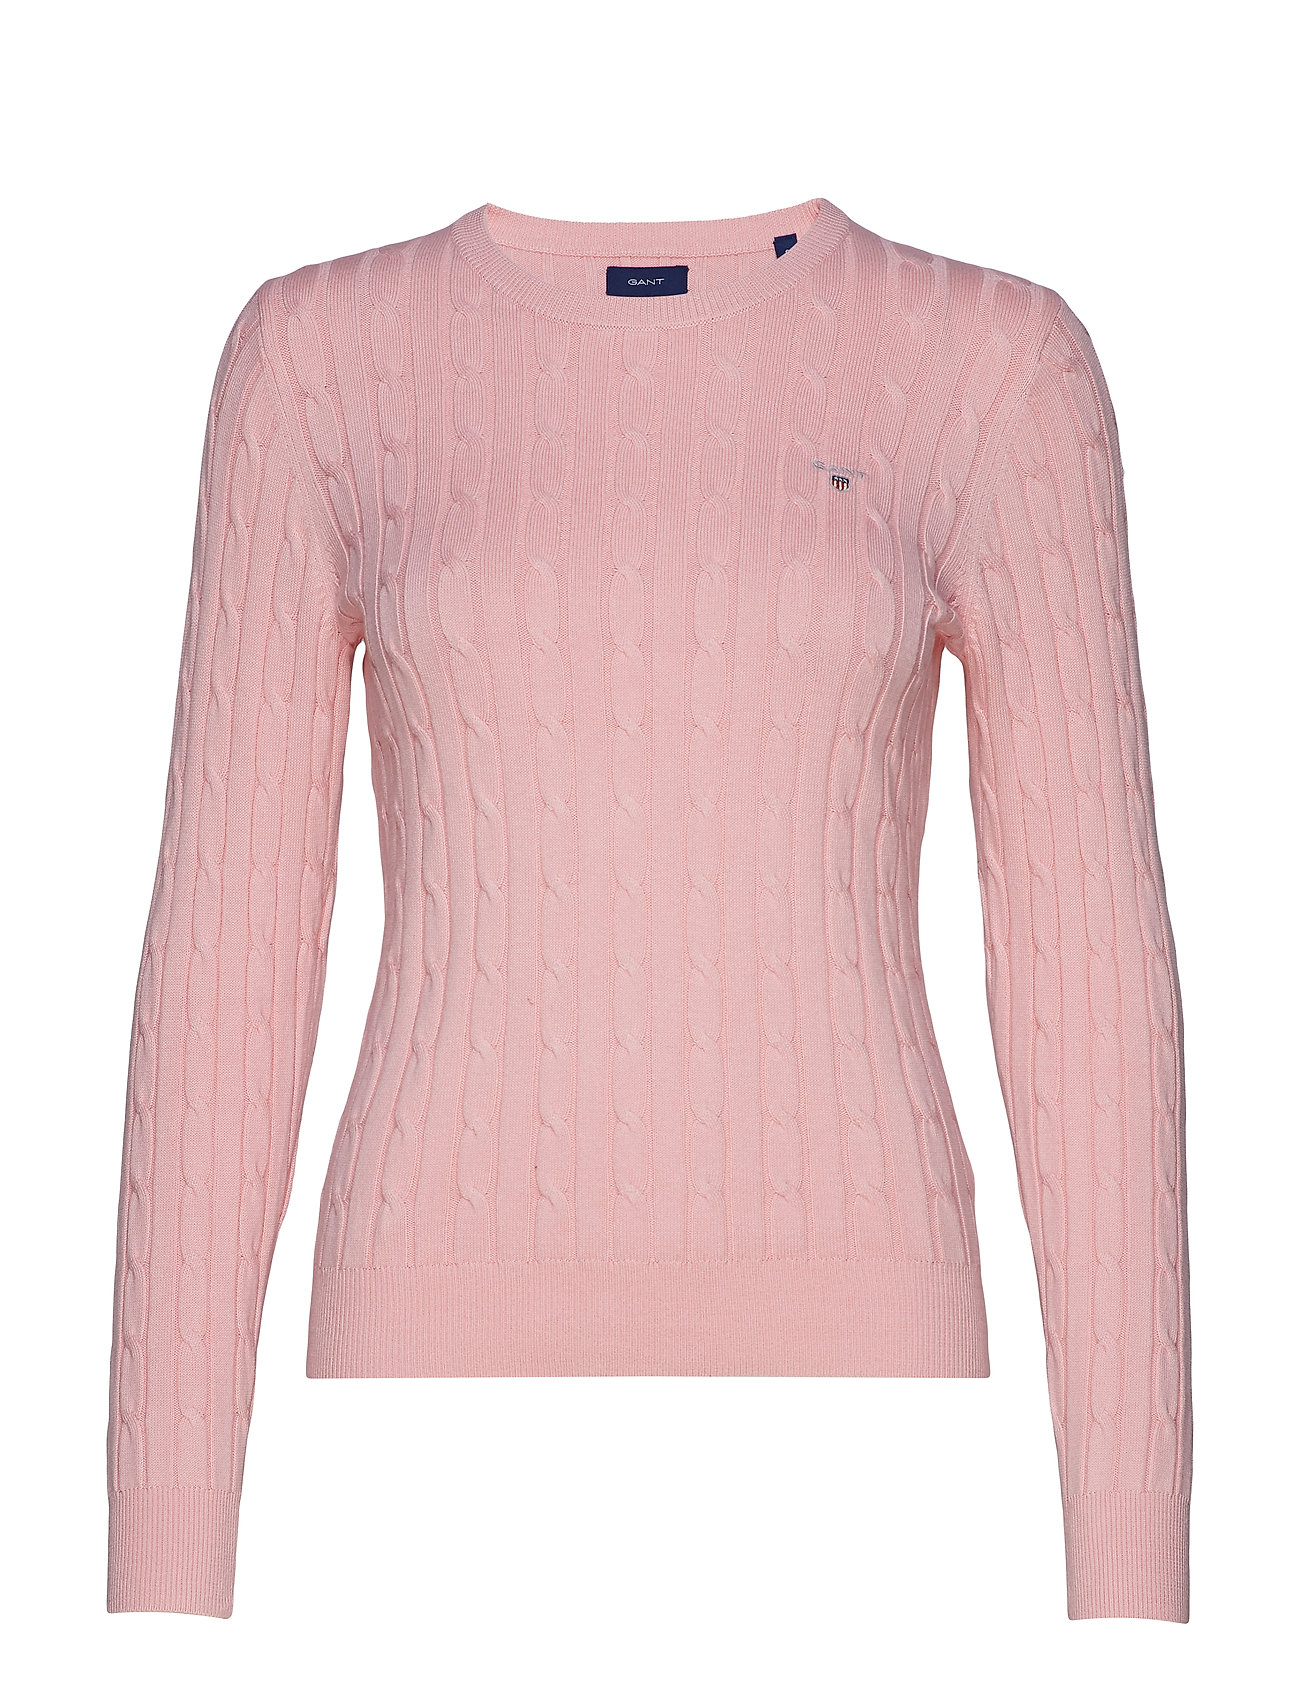 GANT STRETCH COTTON CABLE CREW - PREPPY PINK